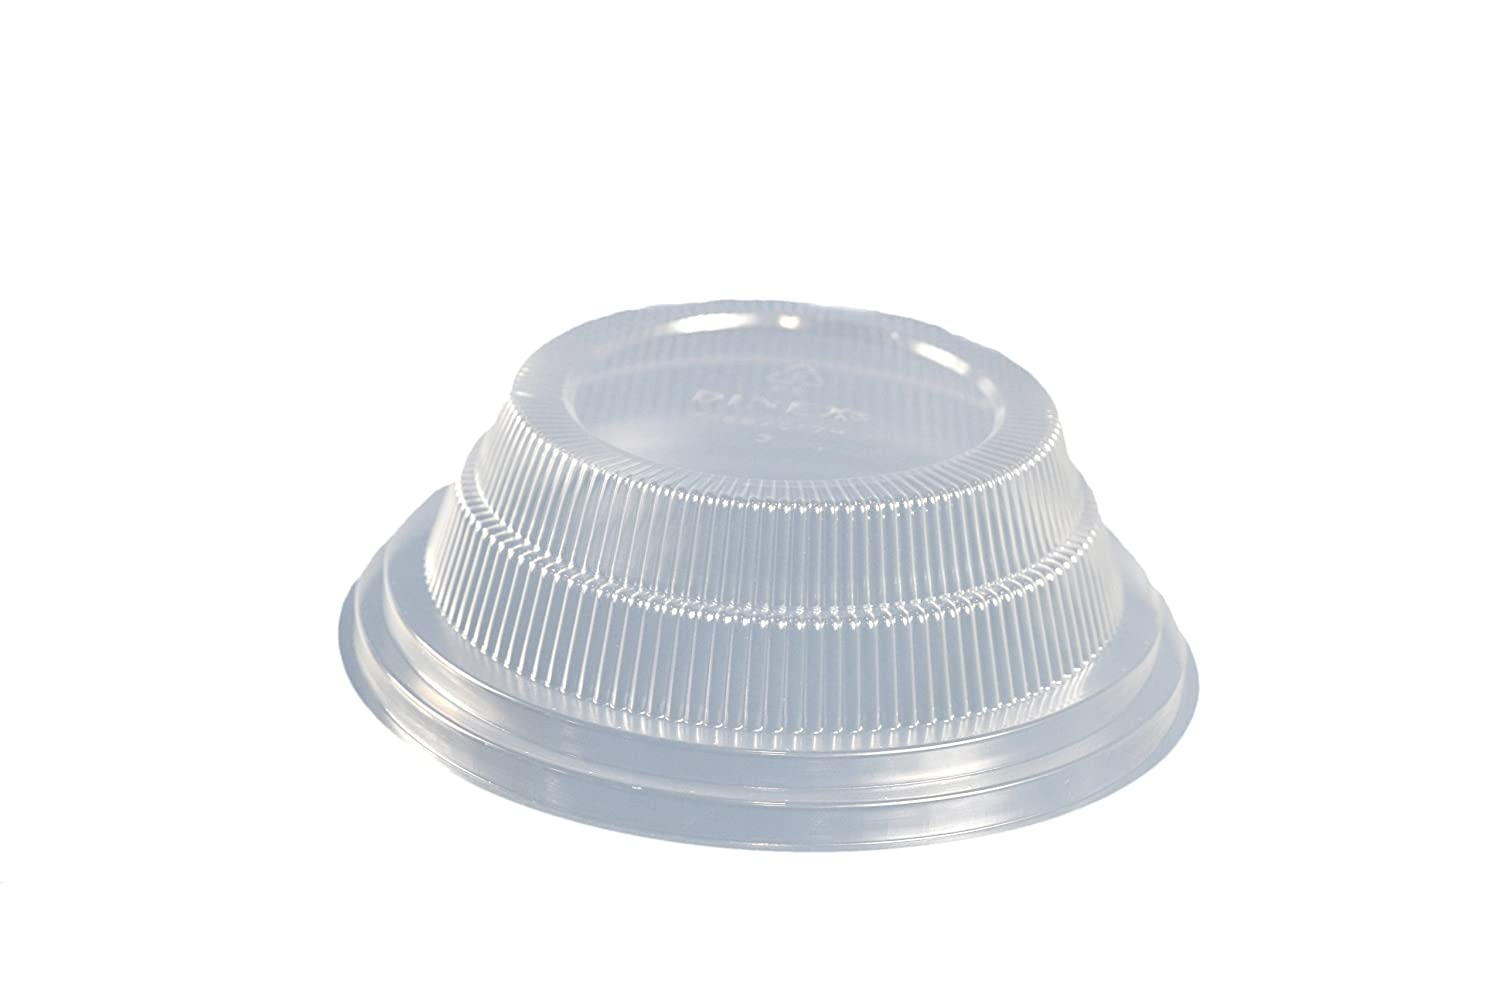 Dinex DX11880174 Classic Super Special SALE held Polystyrene Lid Dome Excellence Disposable Clear